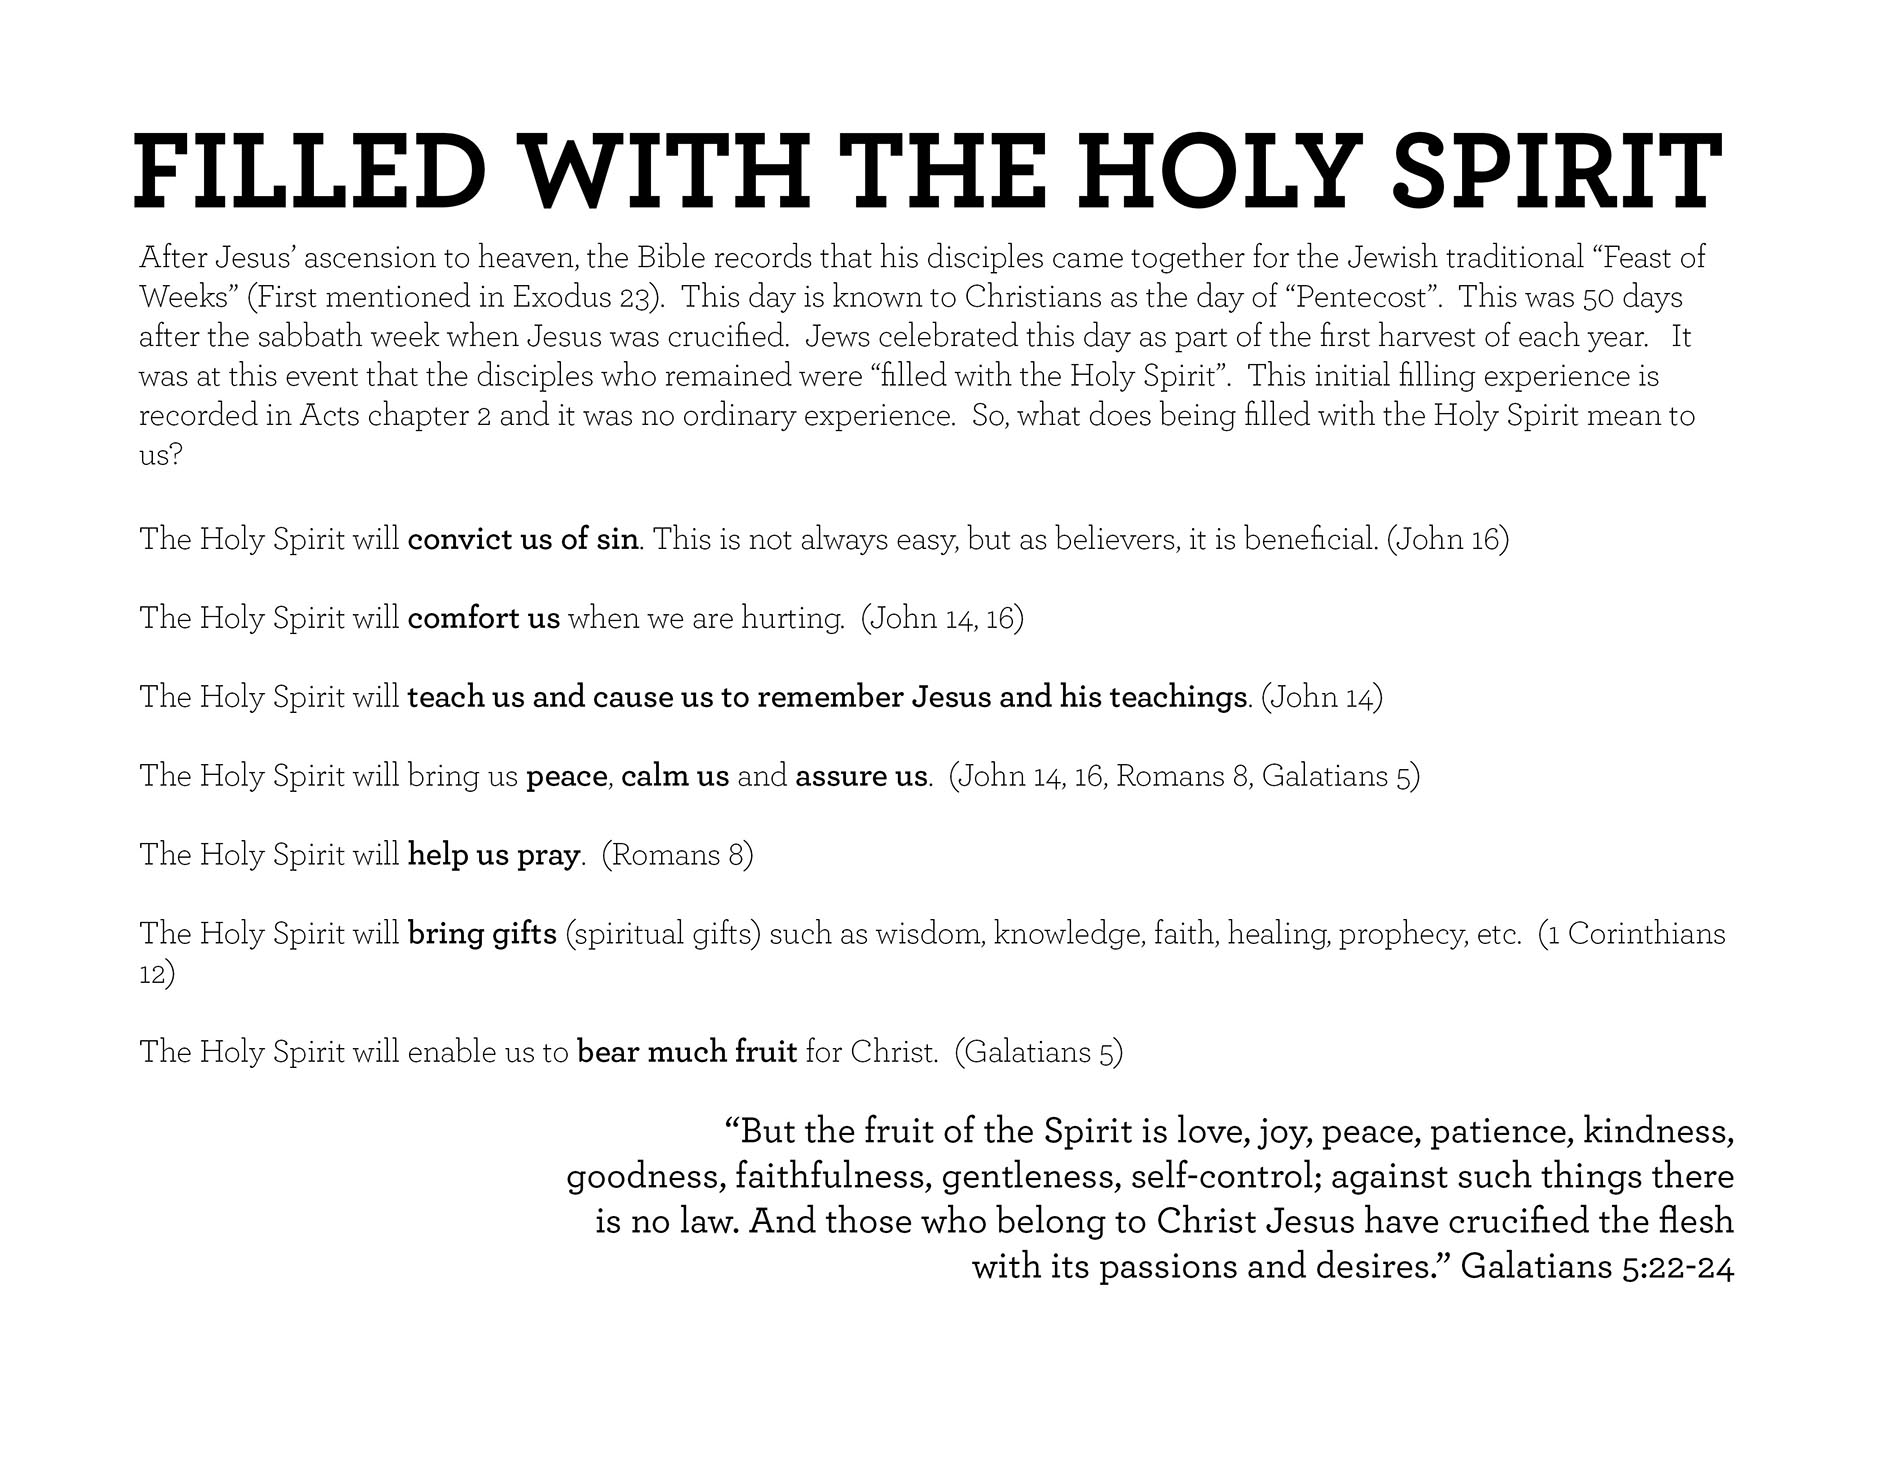 FILLED WITH THE HOLY SPIRIT Galatians 5:22-24